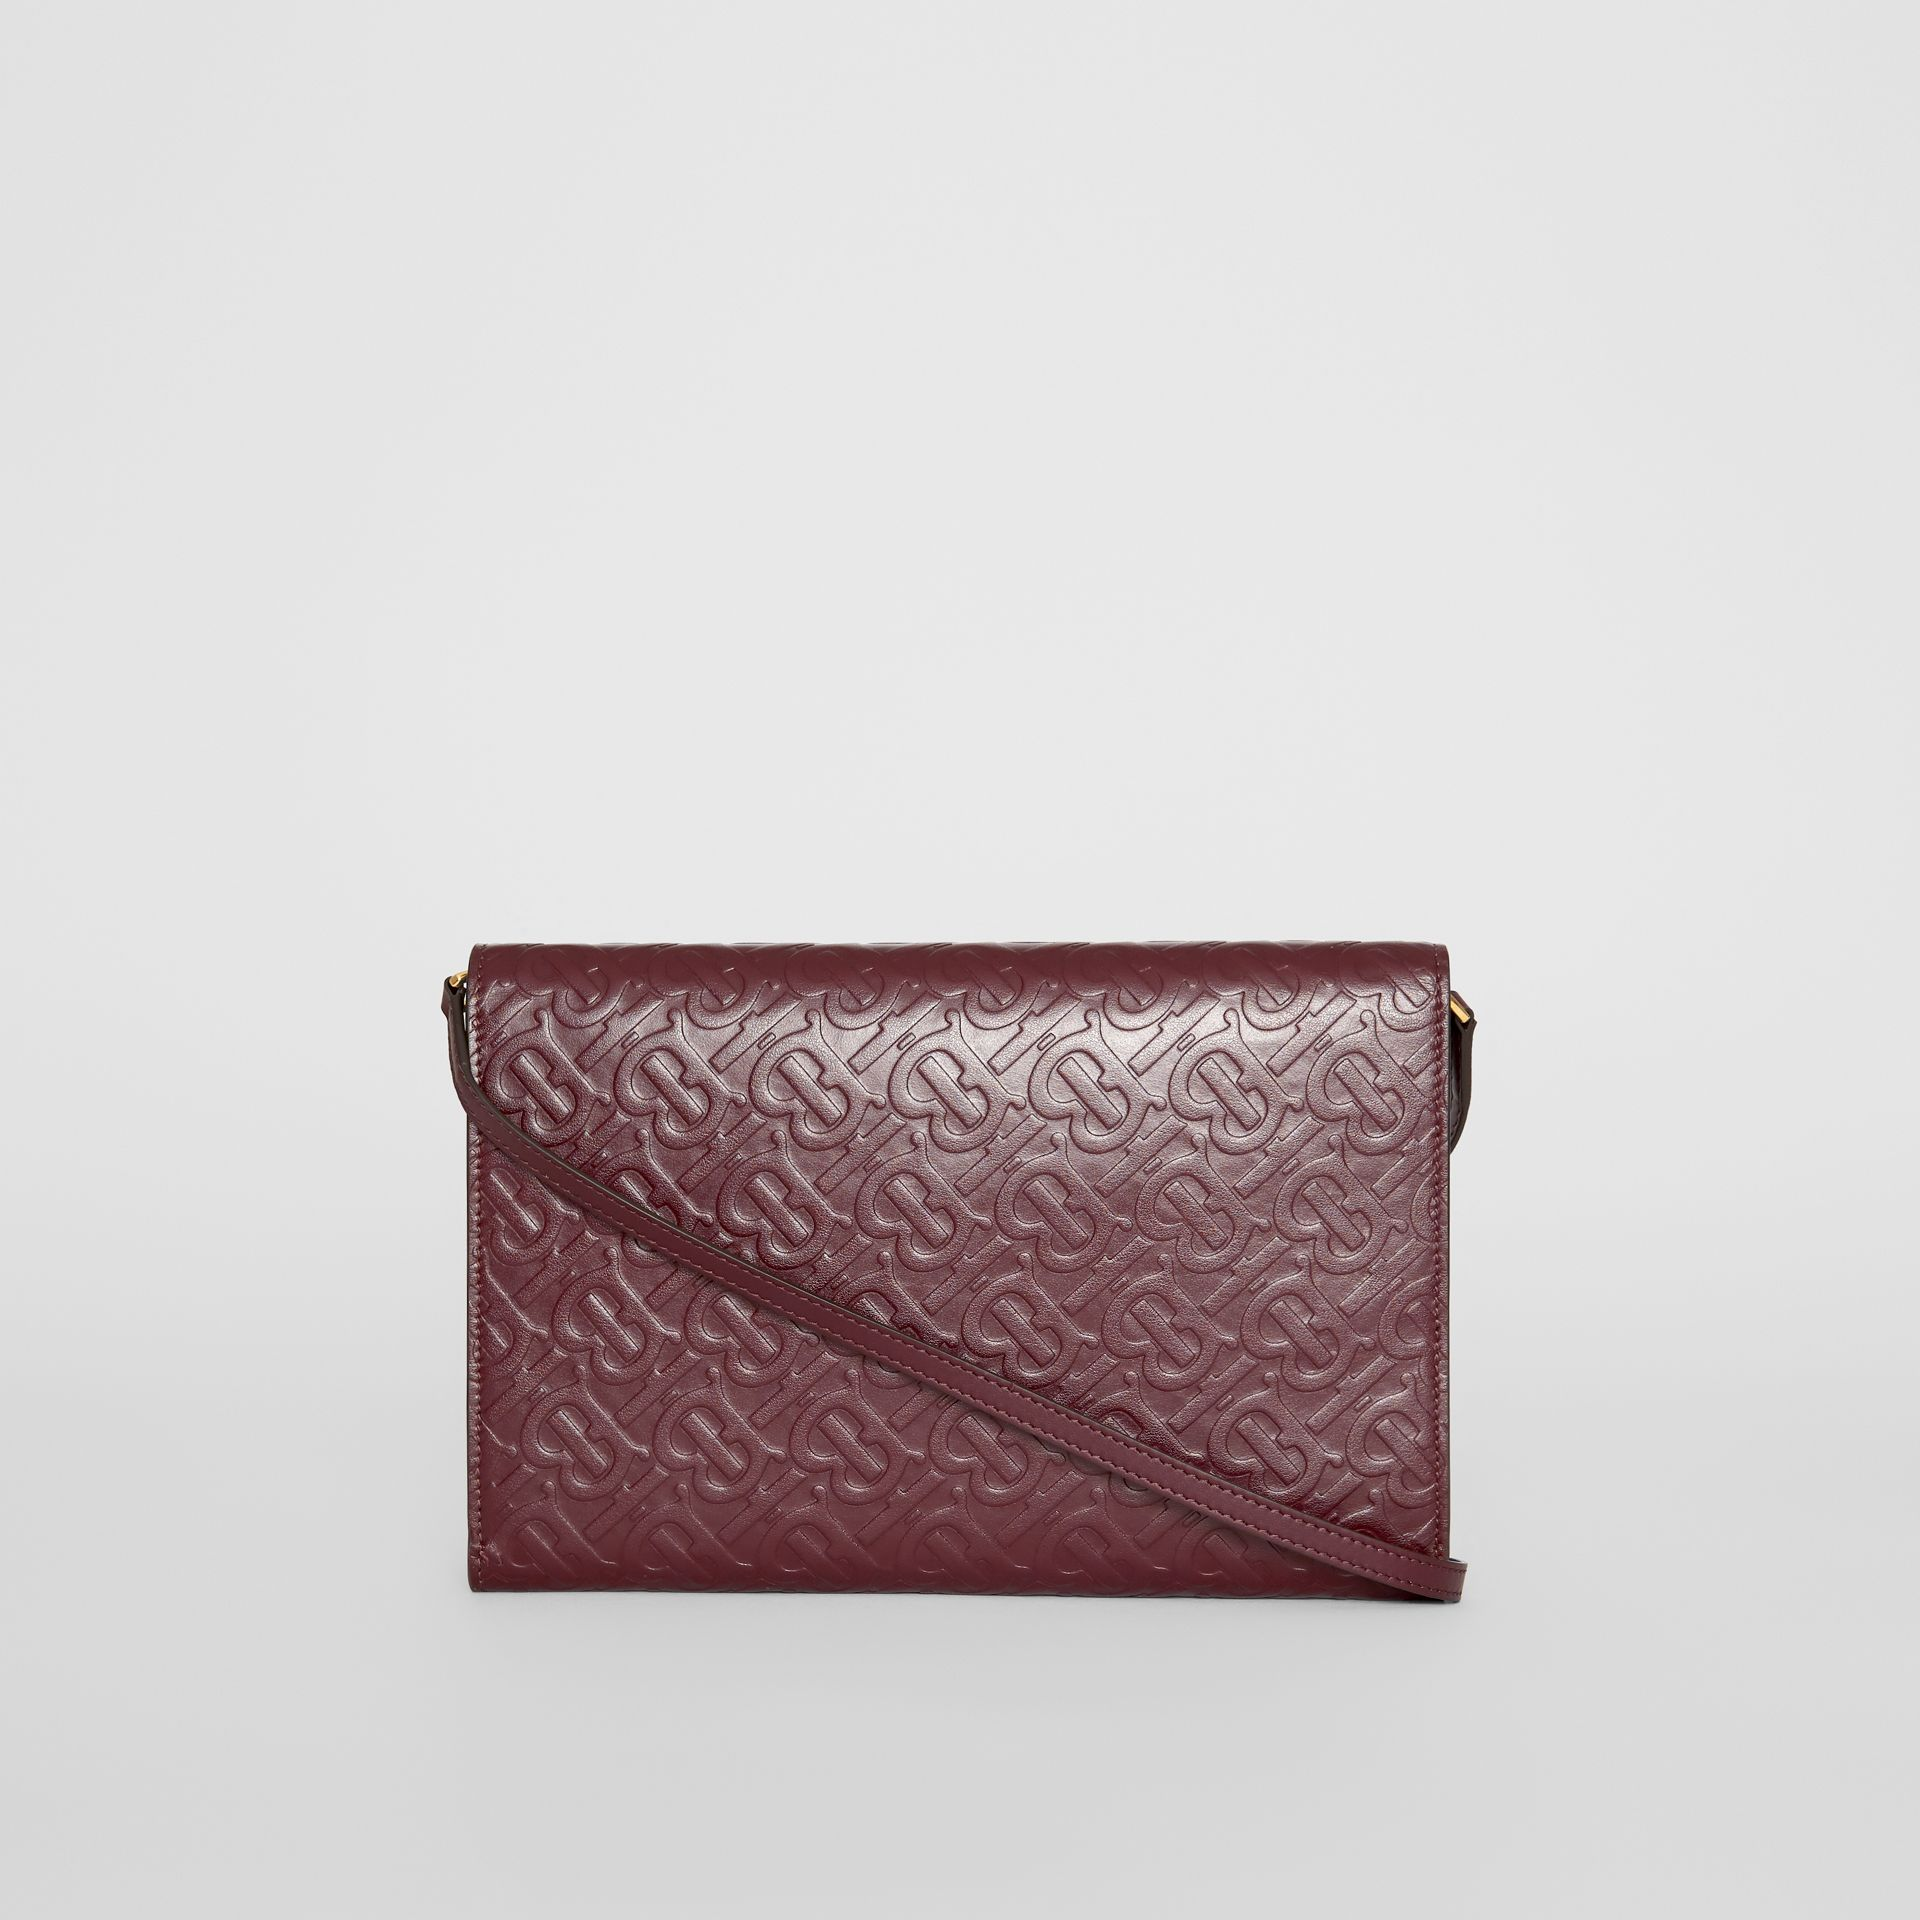 Monogram Leather Bag with Detachable Strap in Oxblood - Women | Burberry Singapore - gallery image 5